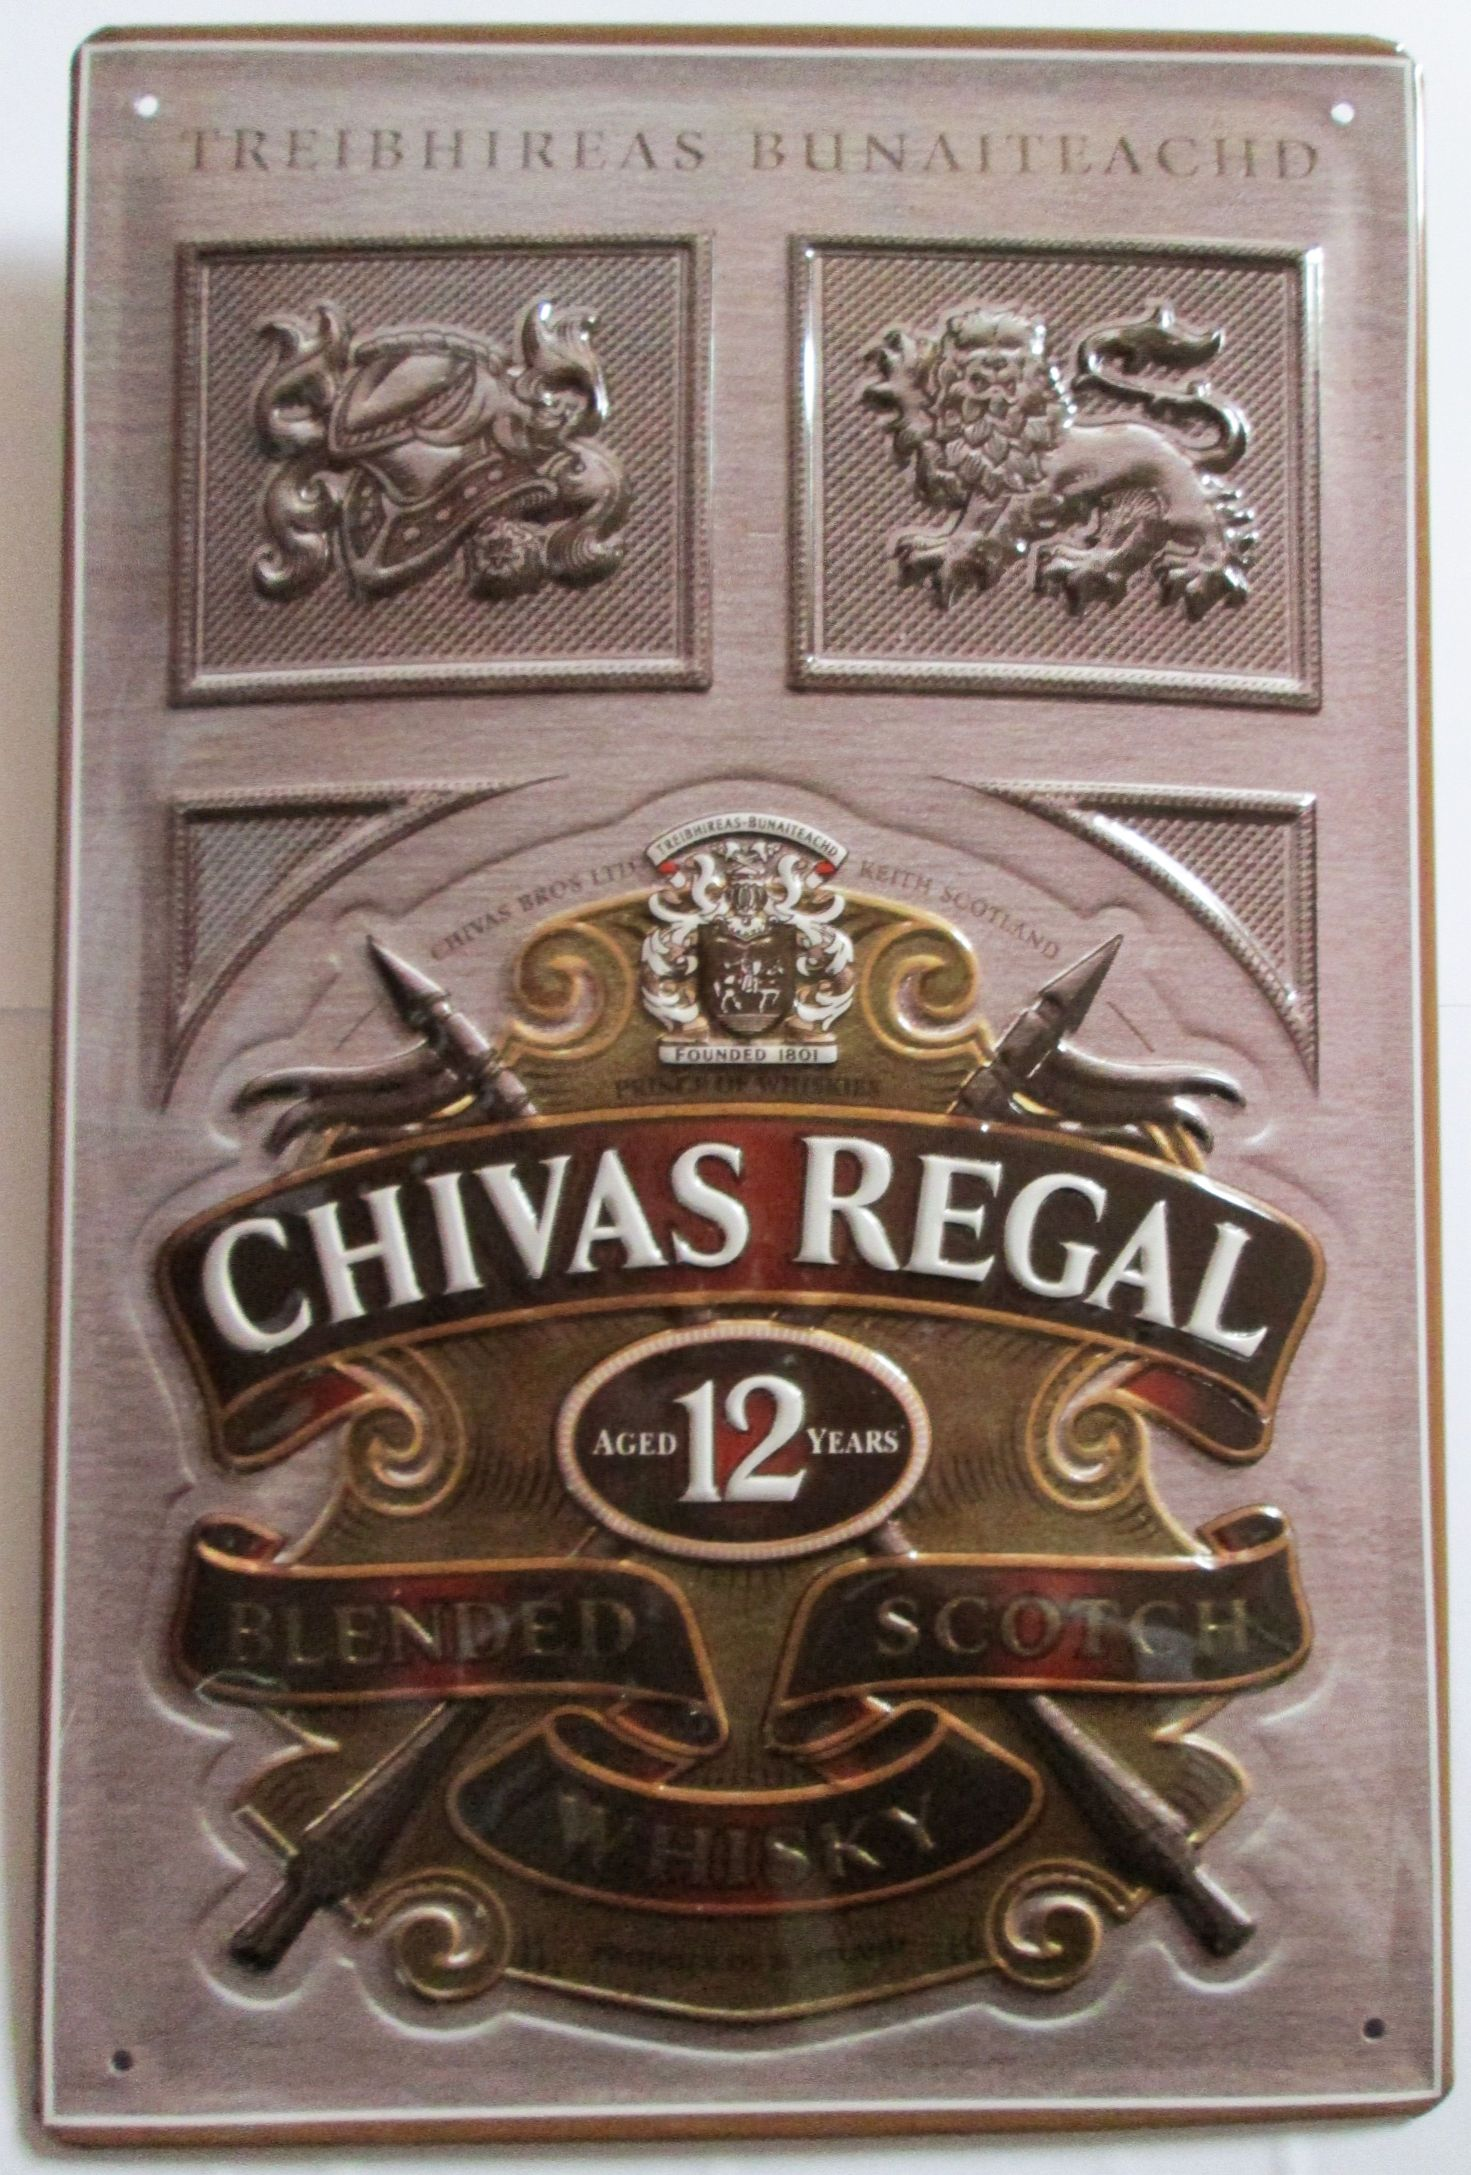 chivas regal diese woche im angebot cheap laptops uk. Black Bedroom Furniture Sets. Home Design Ideas